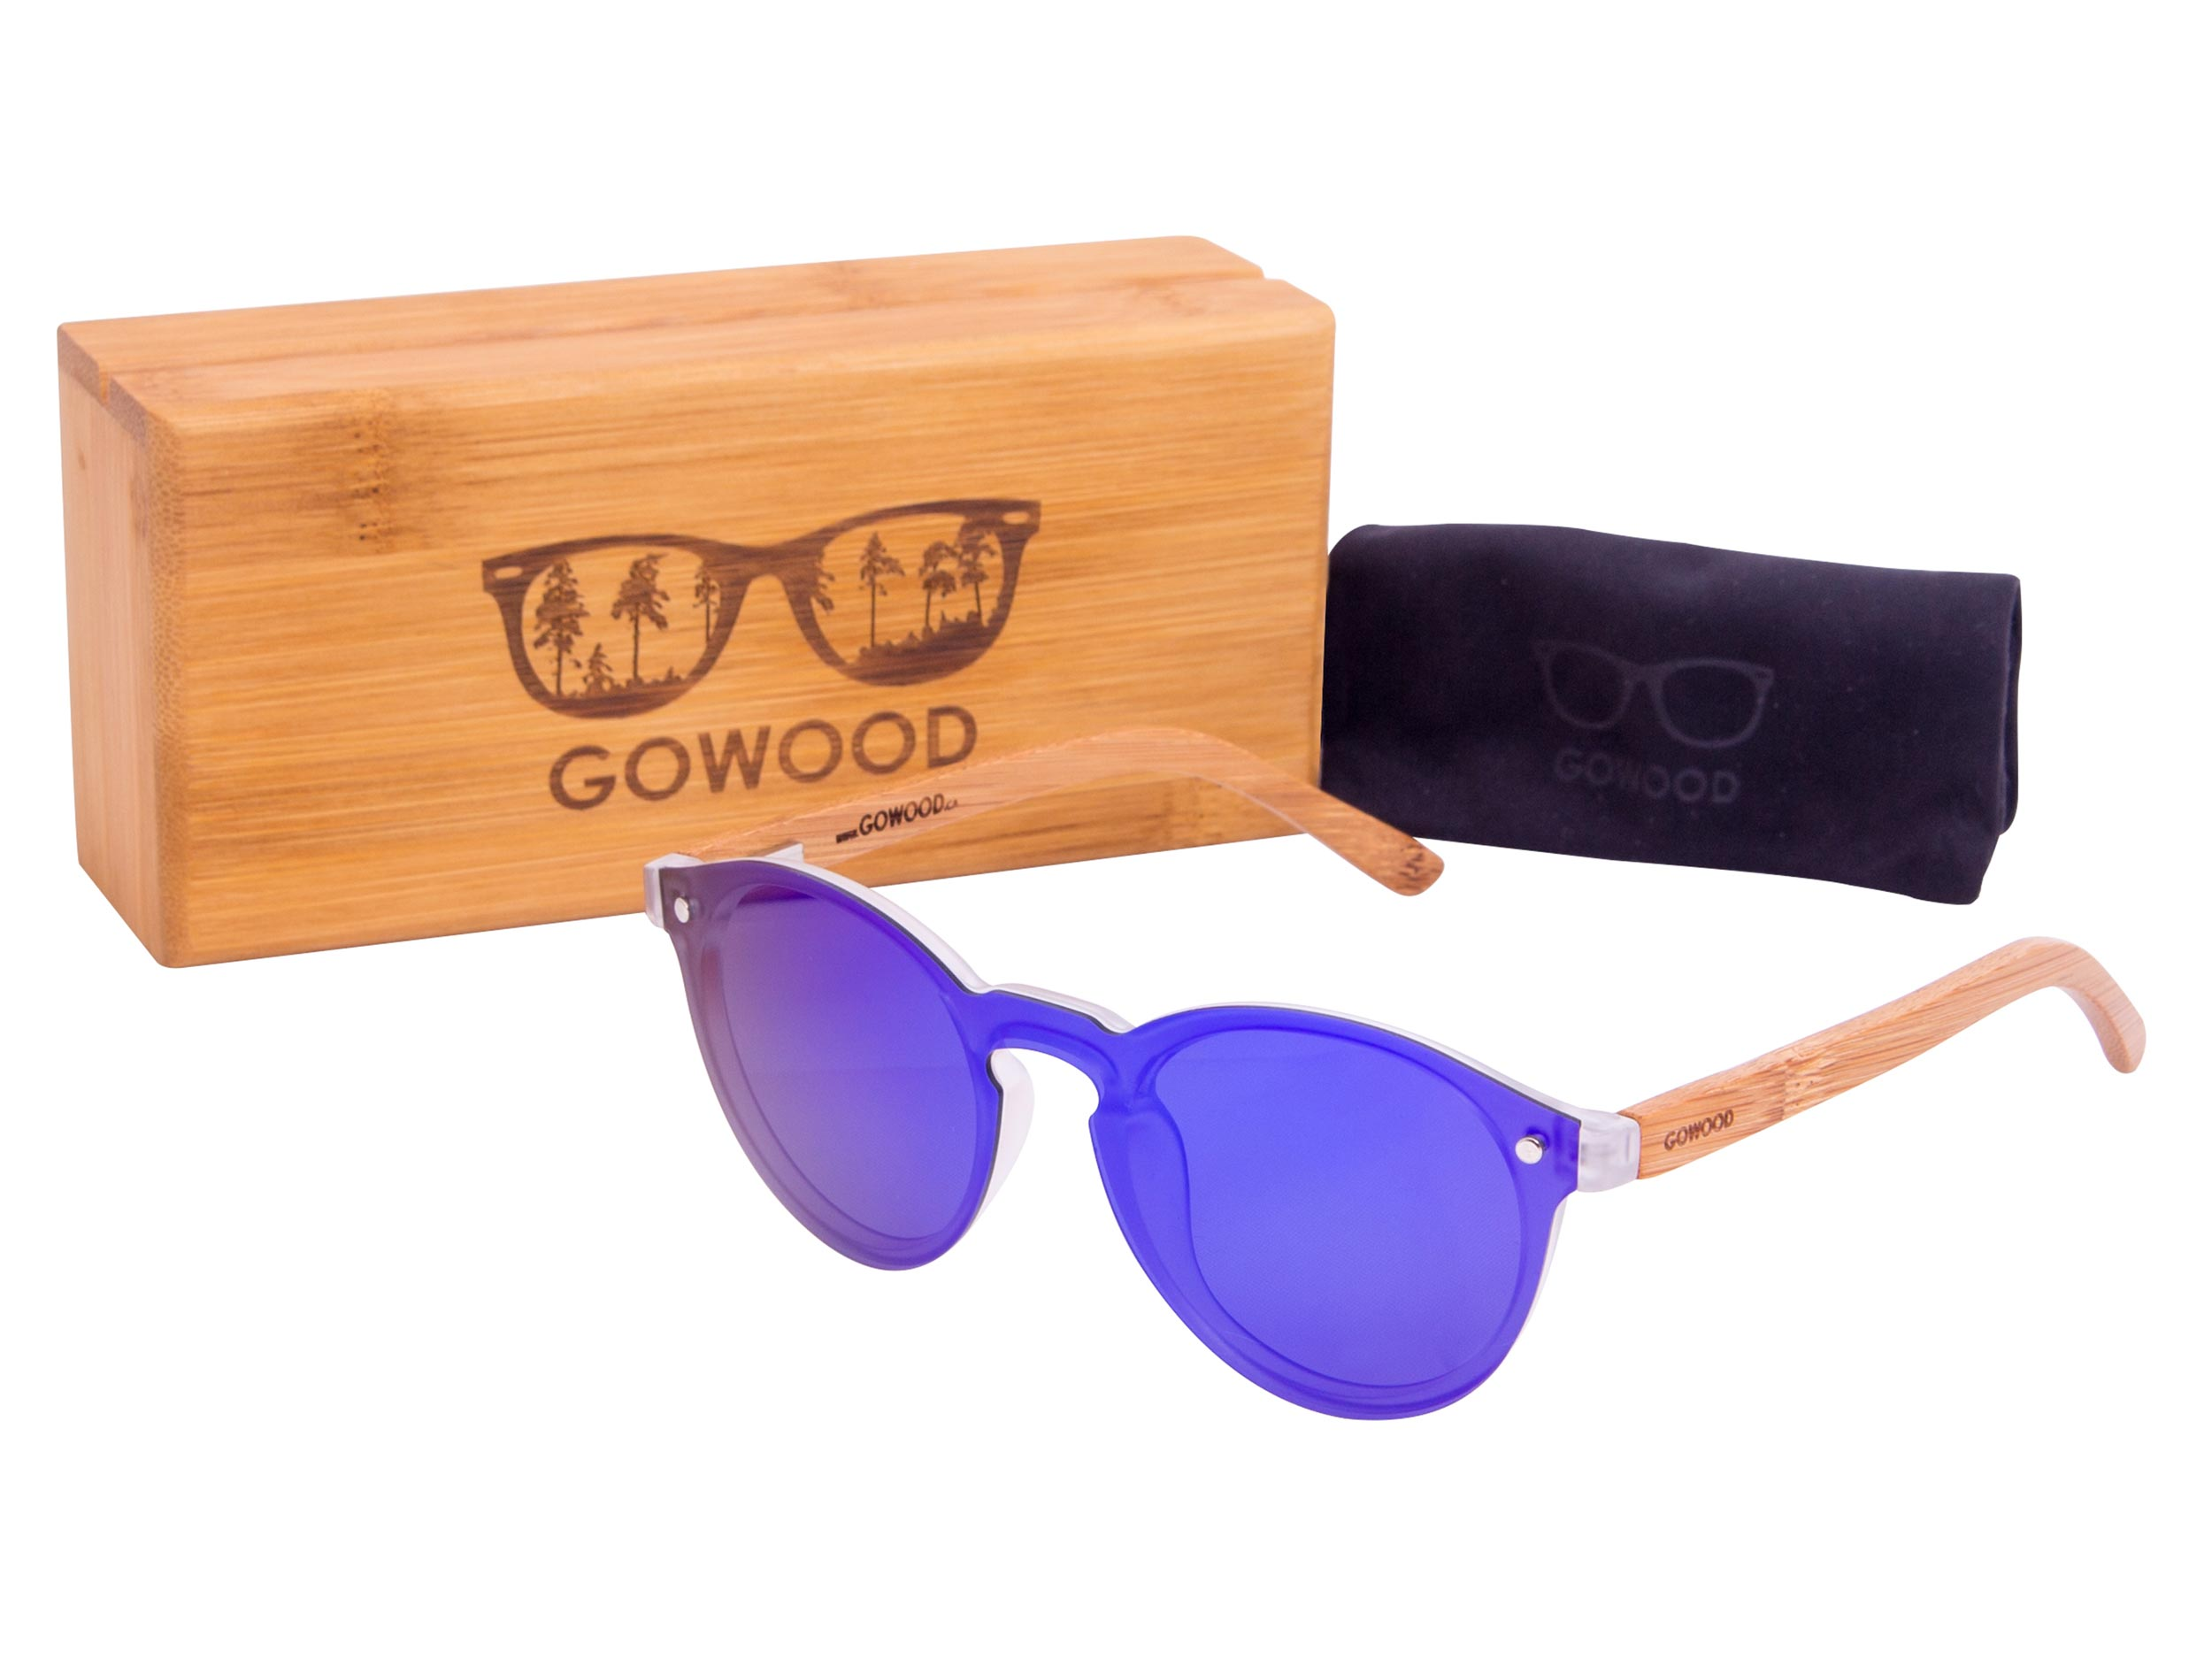 Round bamboo wood sunglasses set